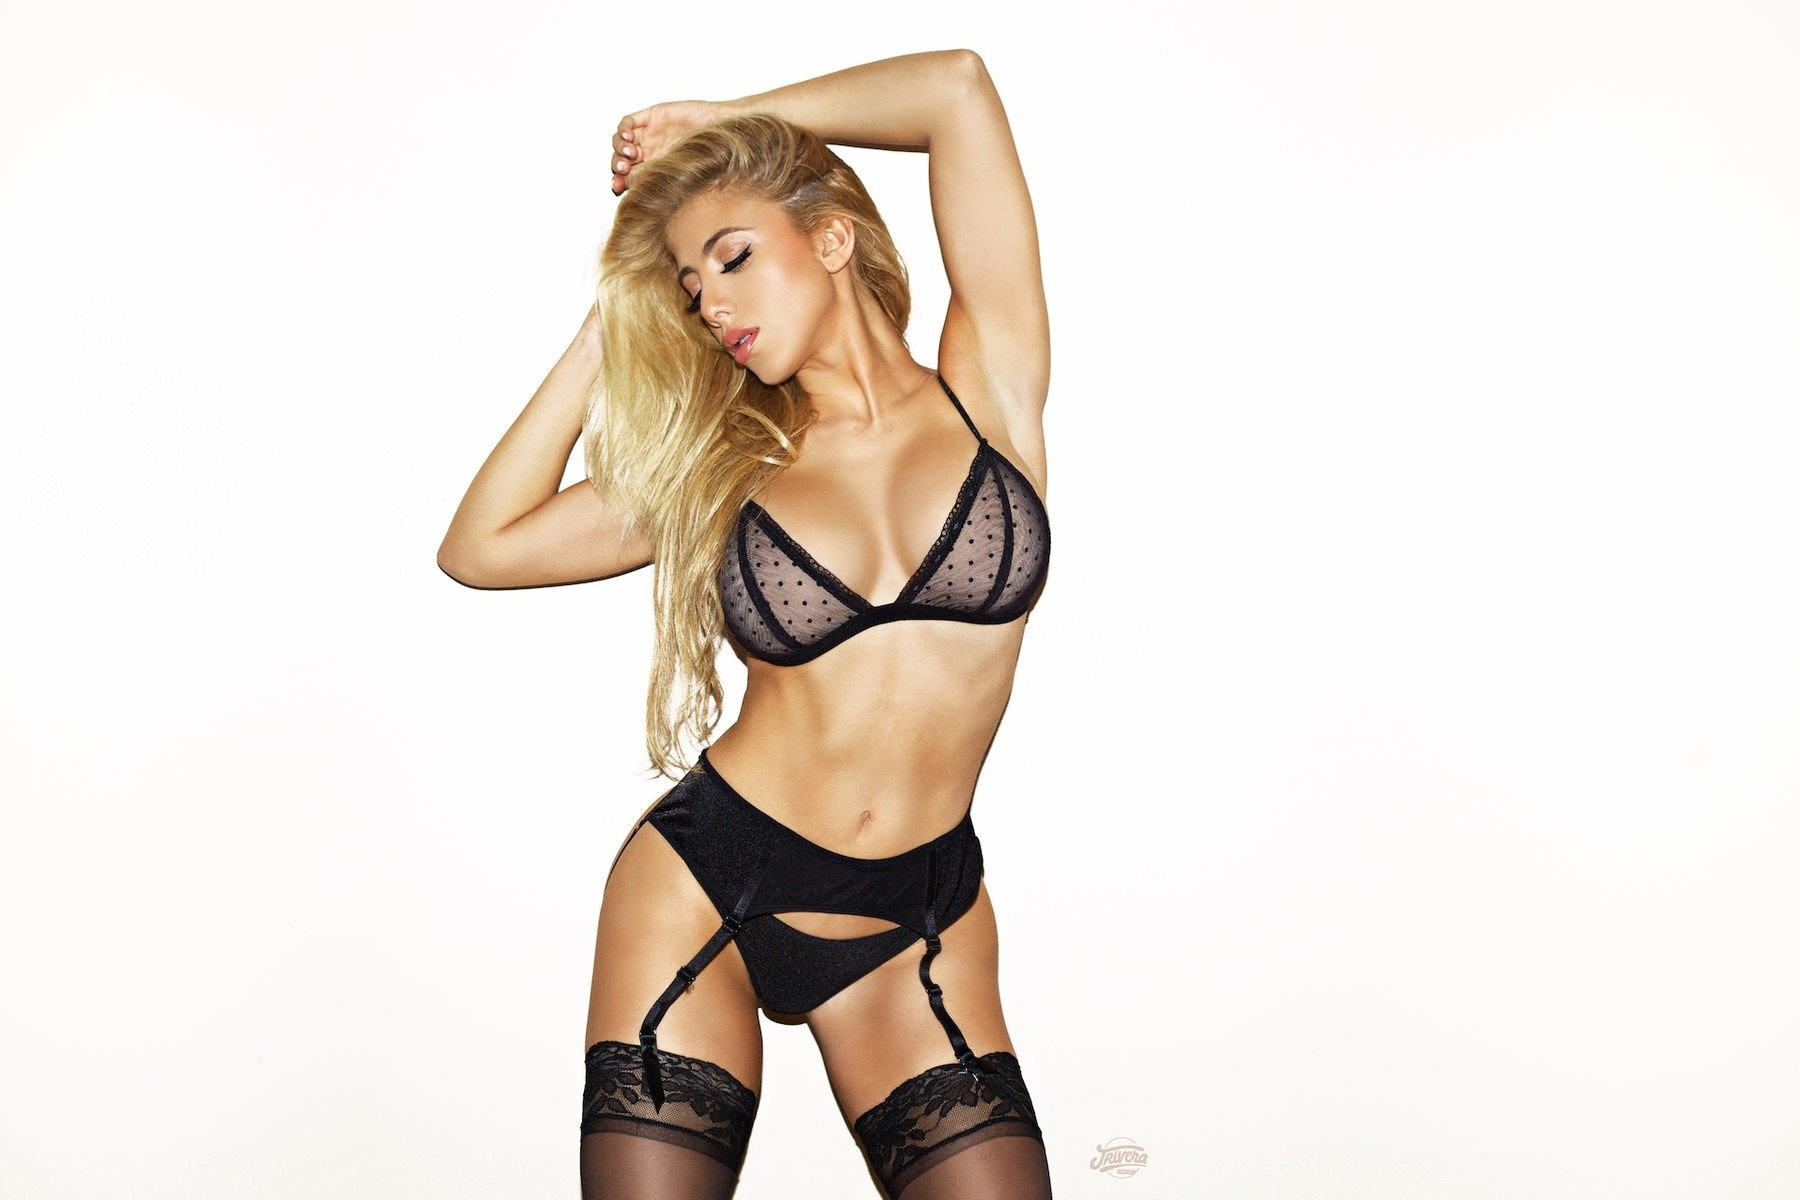 Valeria Orsini High Quality Wallpapers